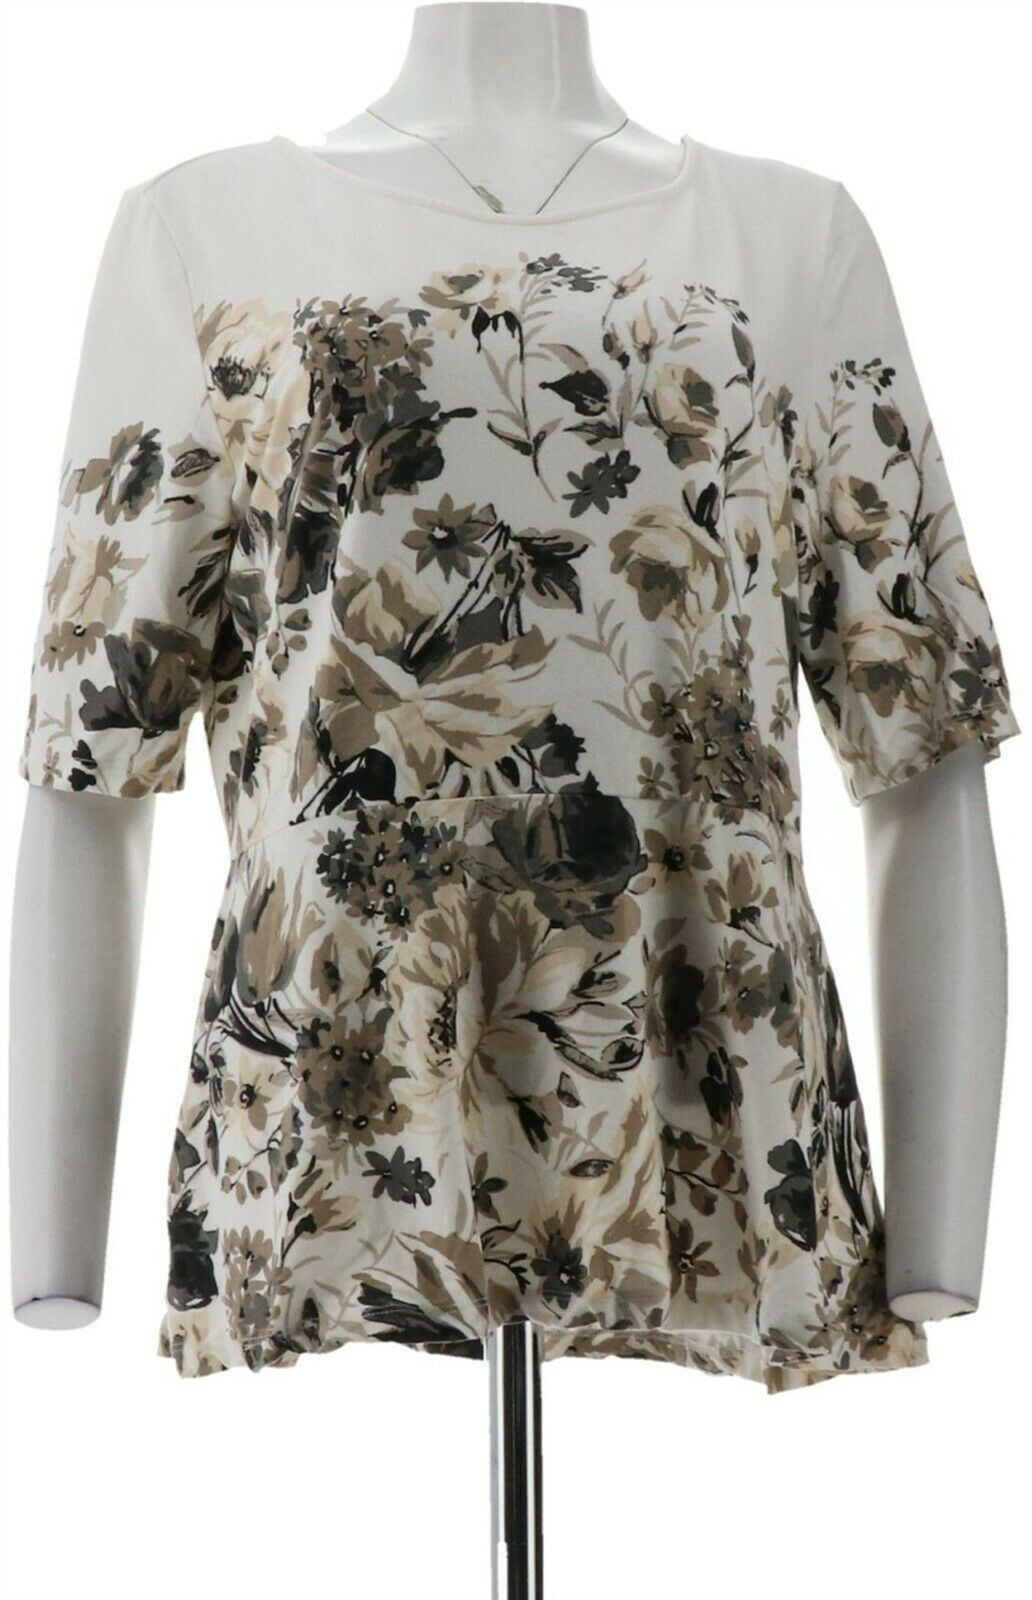 Primary image for Isaac Mizrahi Painterly Floral Print Elbow Slv Peplum Top Cream XS NEW A286132